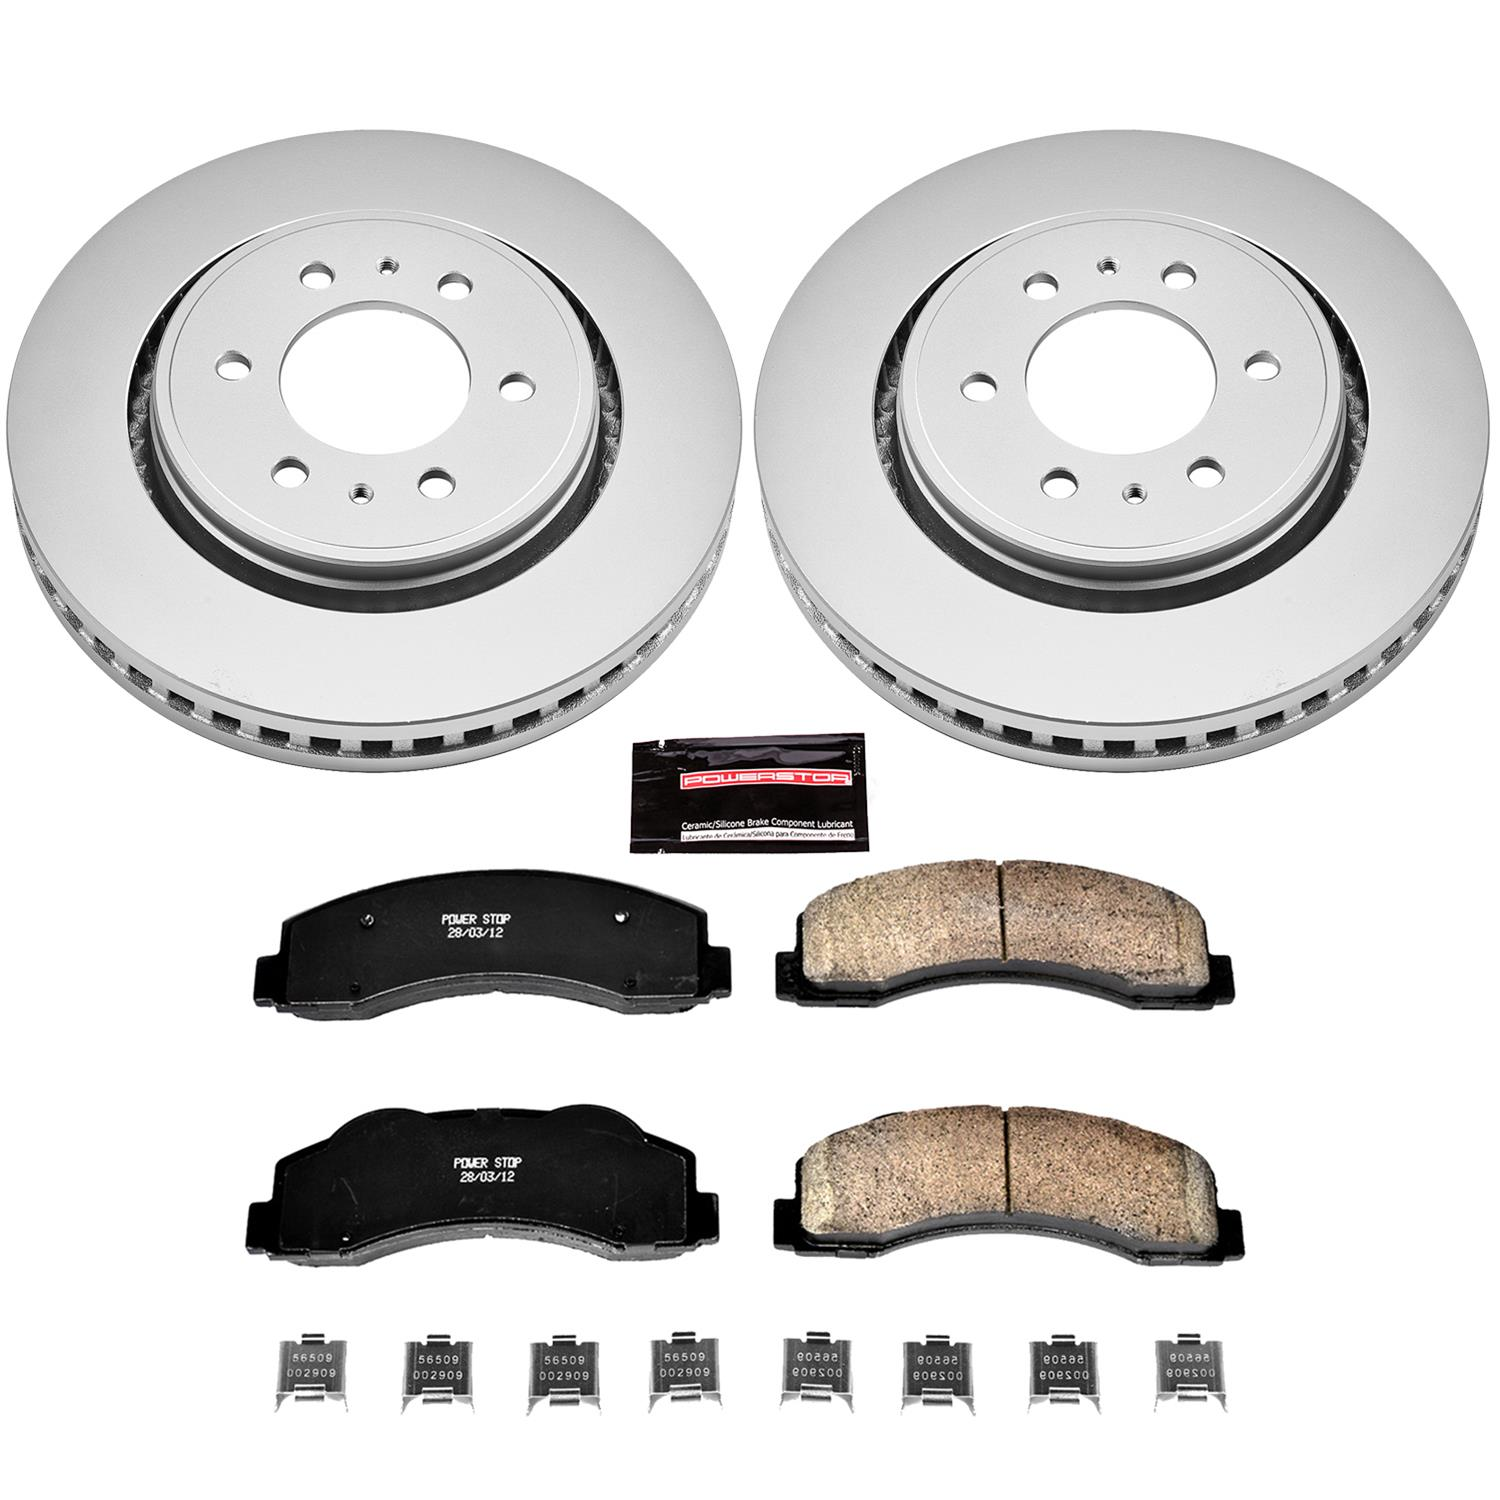 CRK3167 Power Stop Z17 Evolution Brake Kits